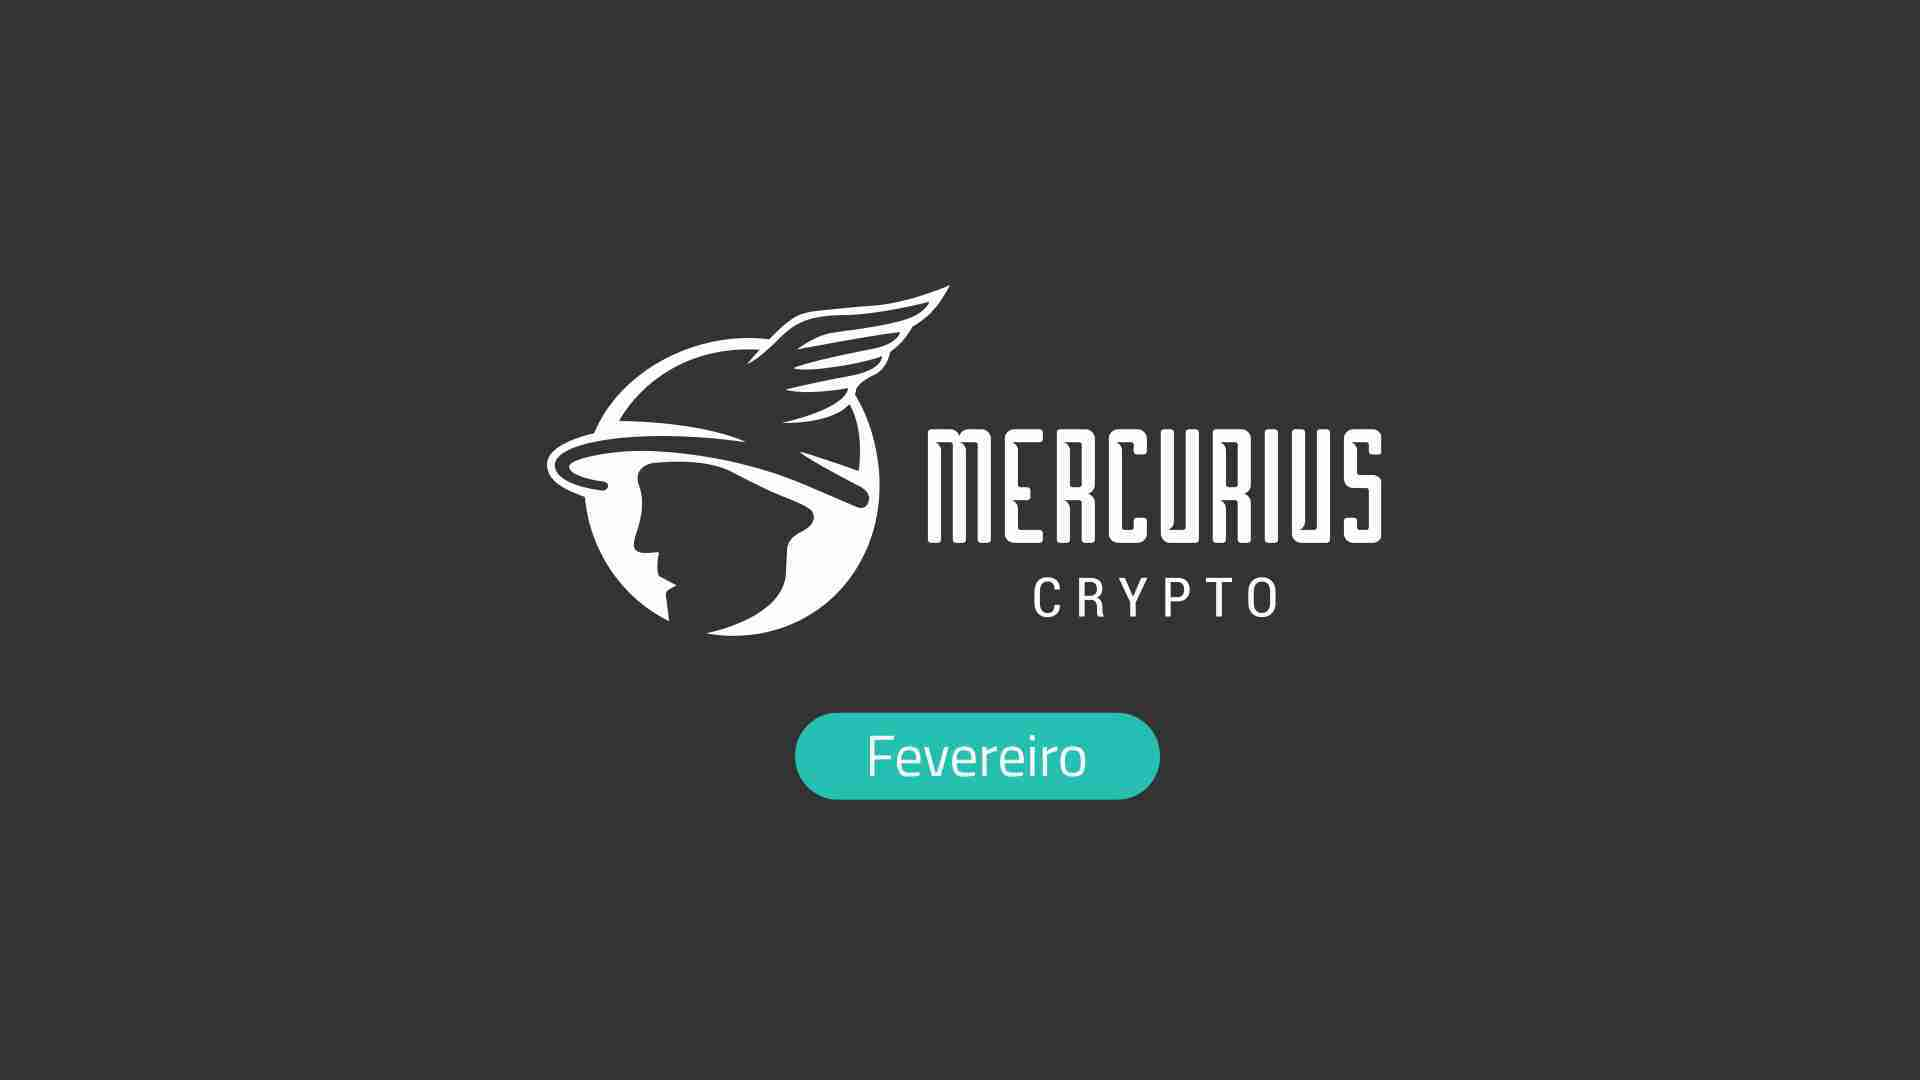 O futuro do mercado cripto: DeFi e NFT. Report da Mercurius Feveiro